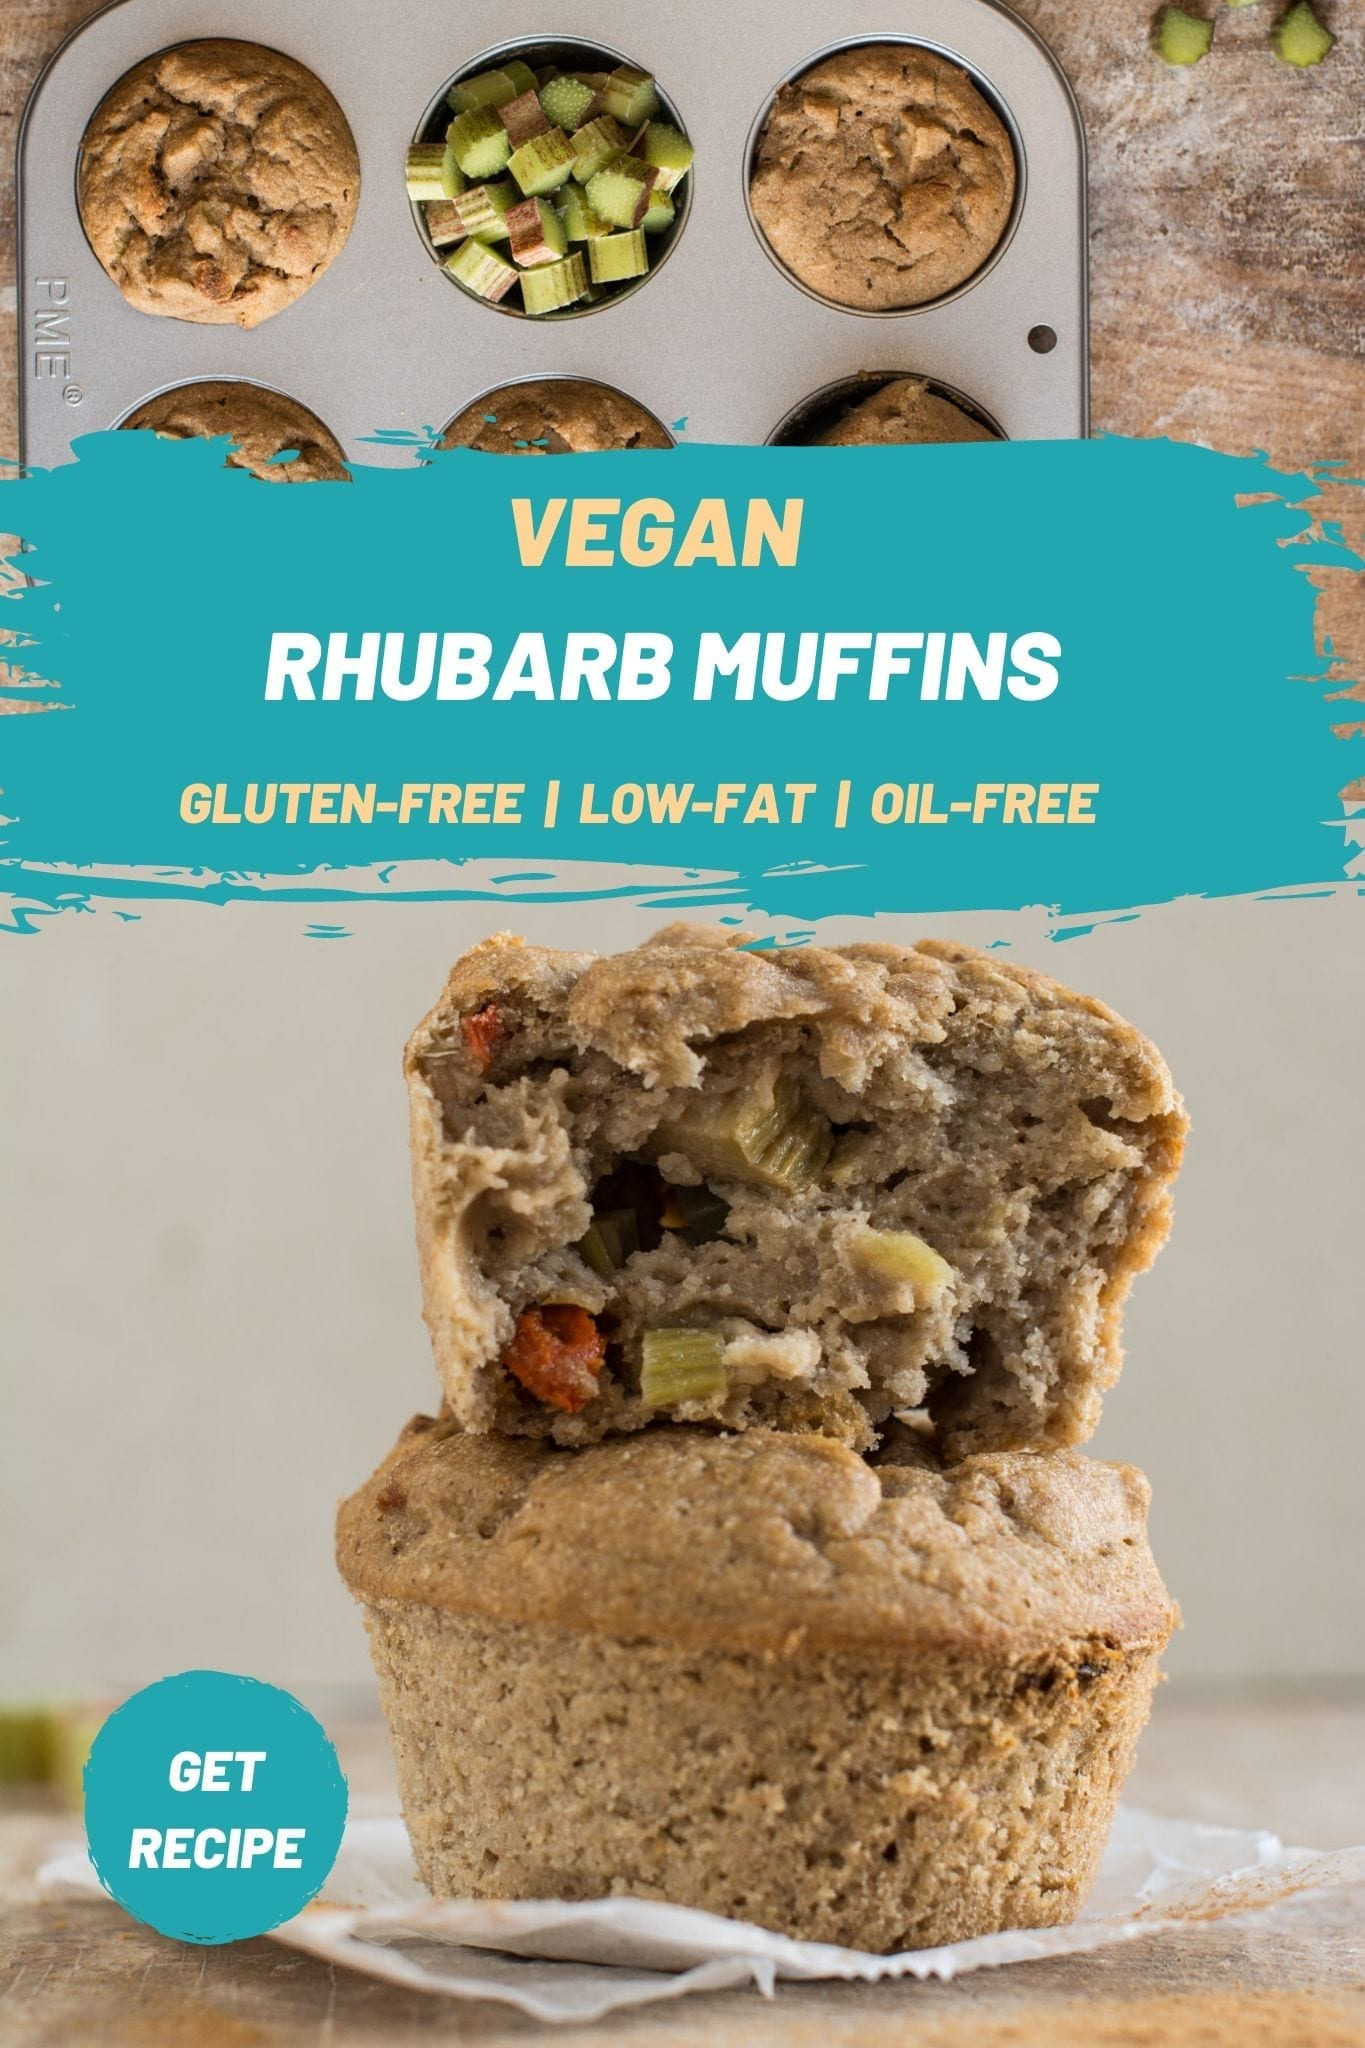 These vegan rhubarb muffins make a perfect breakfast or a lean snack to enjoy in the afternoon with tea. Besides being quick and easy to make, they are also oil-free, sugar-free, dairy-free, gluten-free.